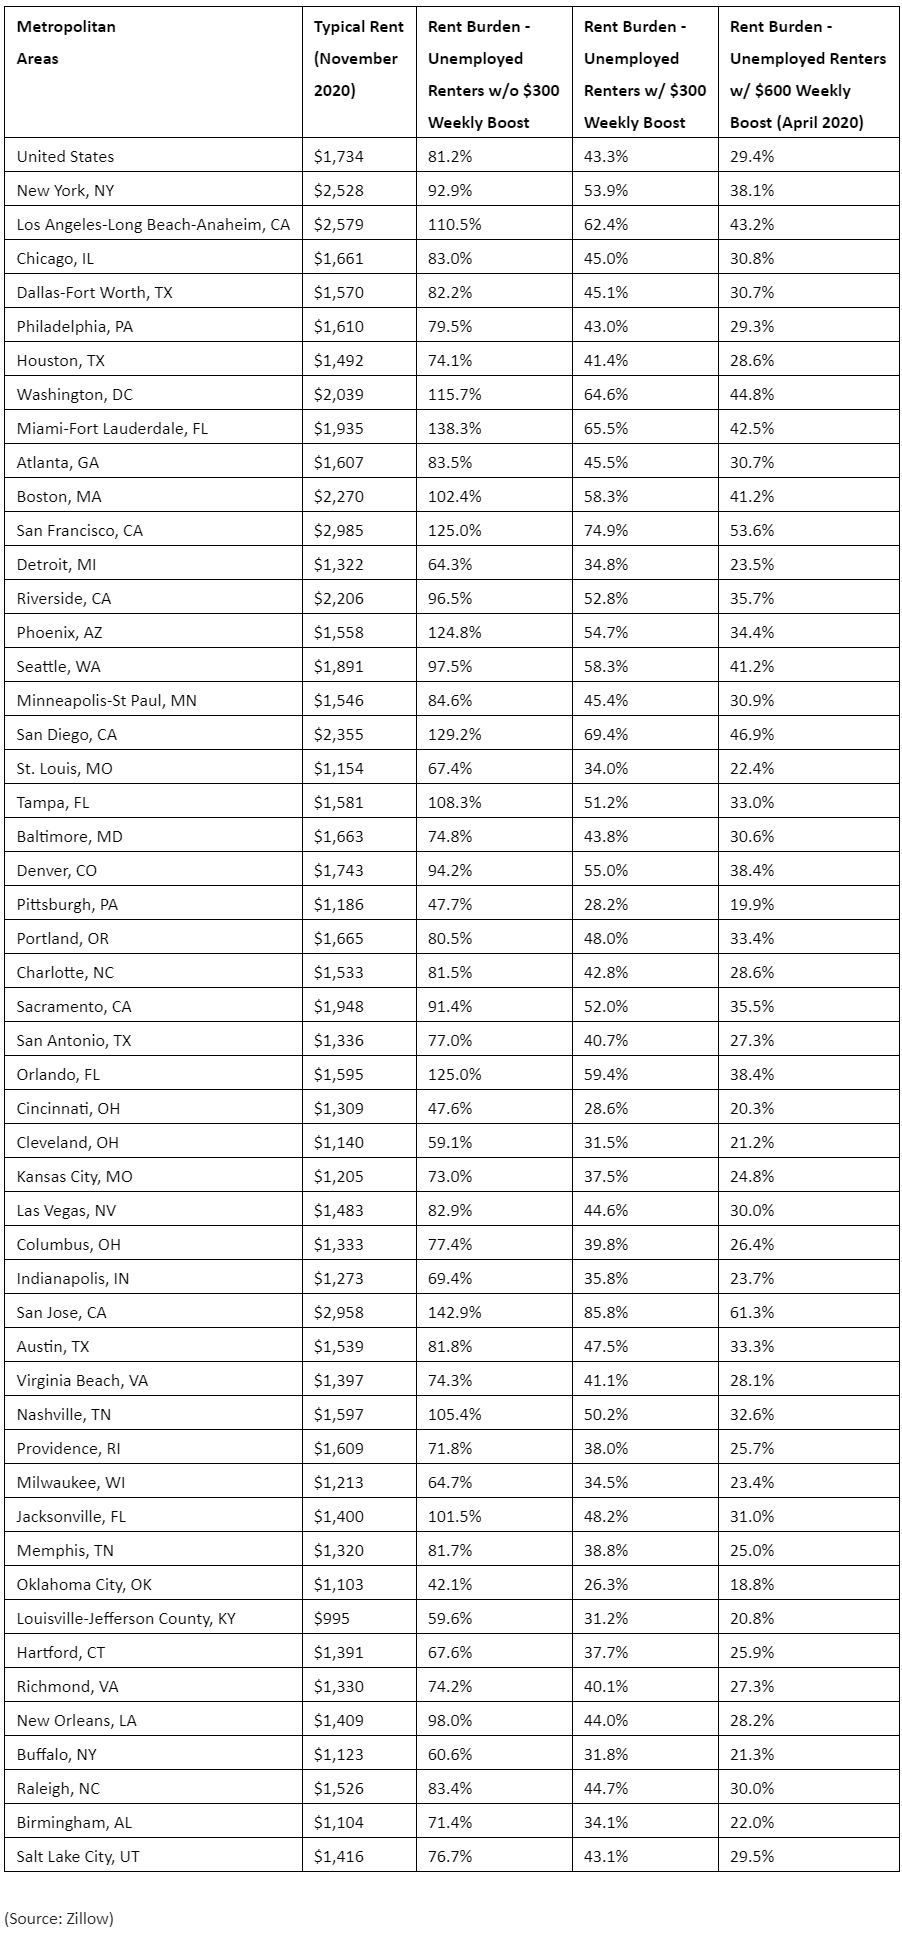 Zillow-2021-housing-reports,-COVID-19-impact-on-rental-market.jpg